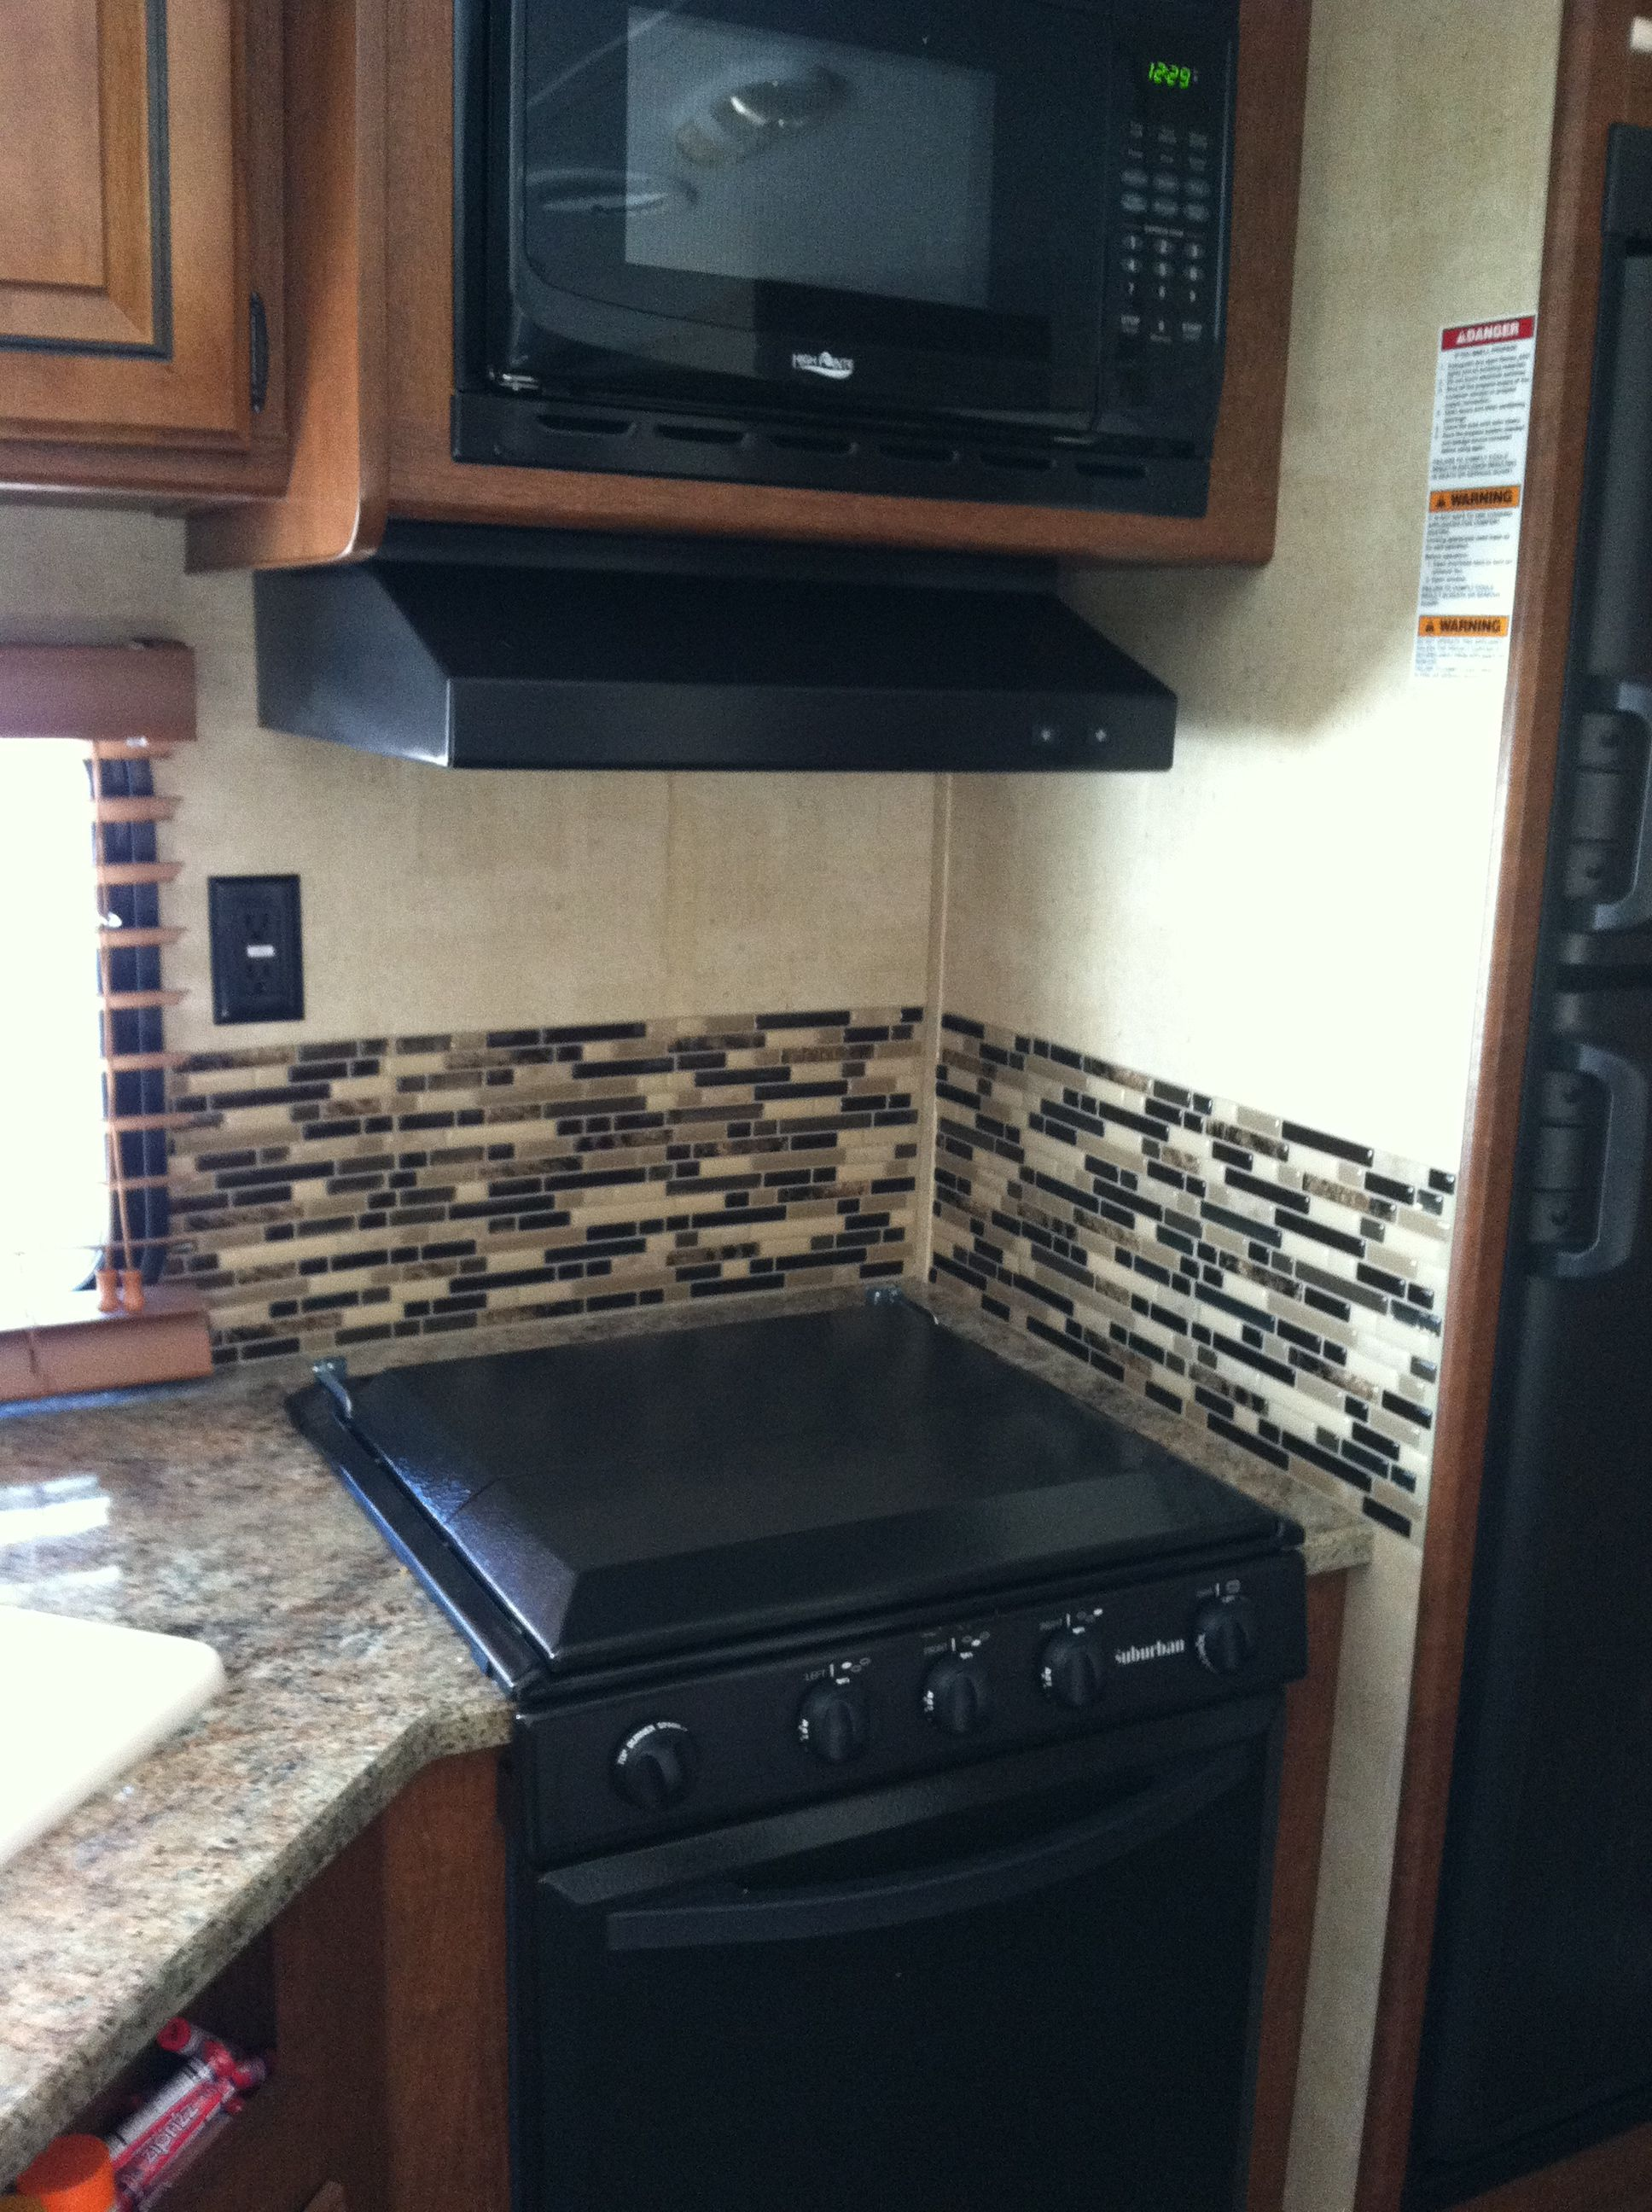 Wall Paper Borders For Kitchens Cupcake Kitchen Accessories Replaced The Hideous Wallpaper Border With Peel And Stick Smart Tiles From Home Depot Love Look Camping Trailerlife